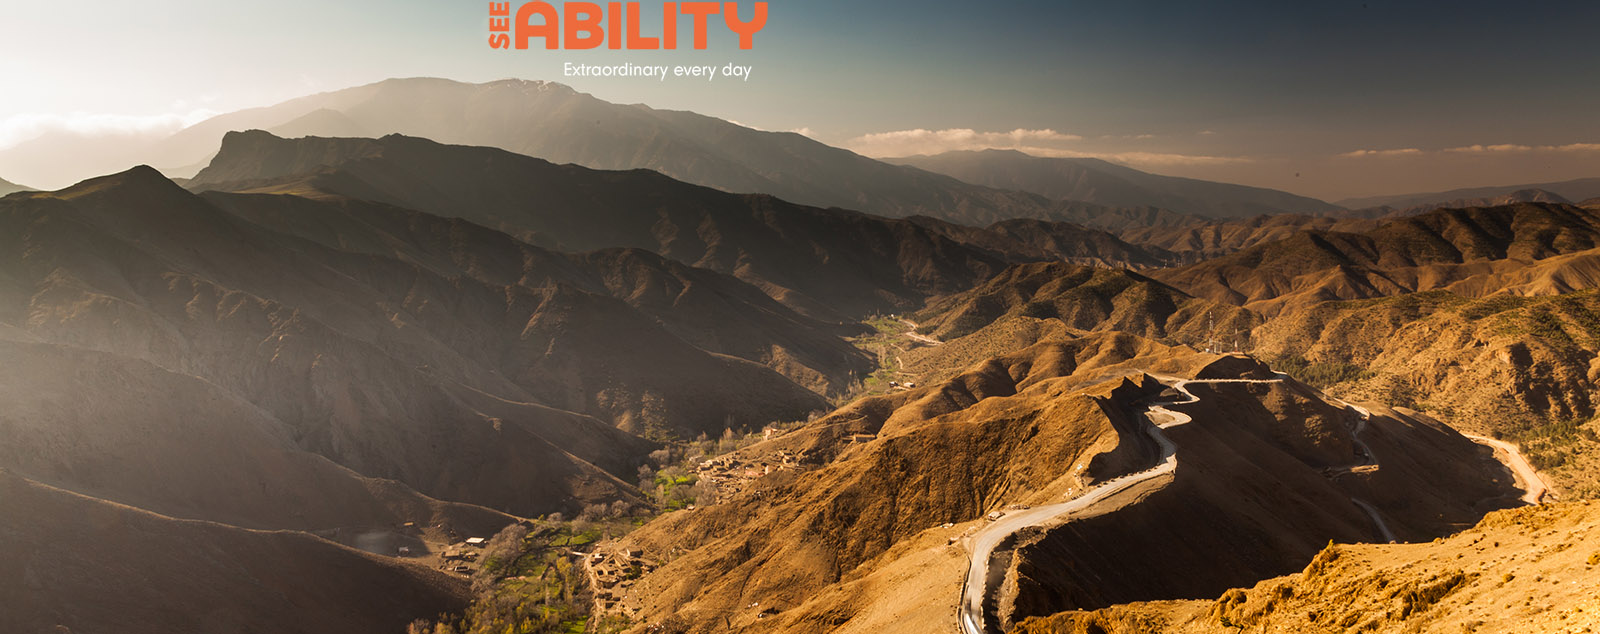 Panoramic view of the Atlas Mountains with mule paths and green valleys below